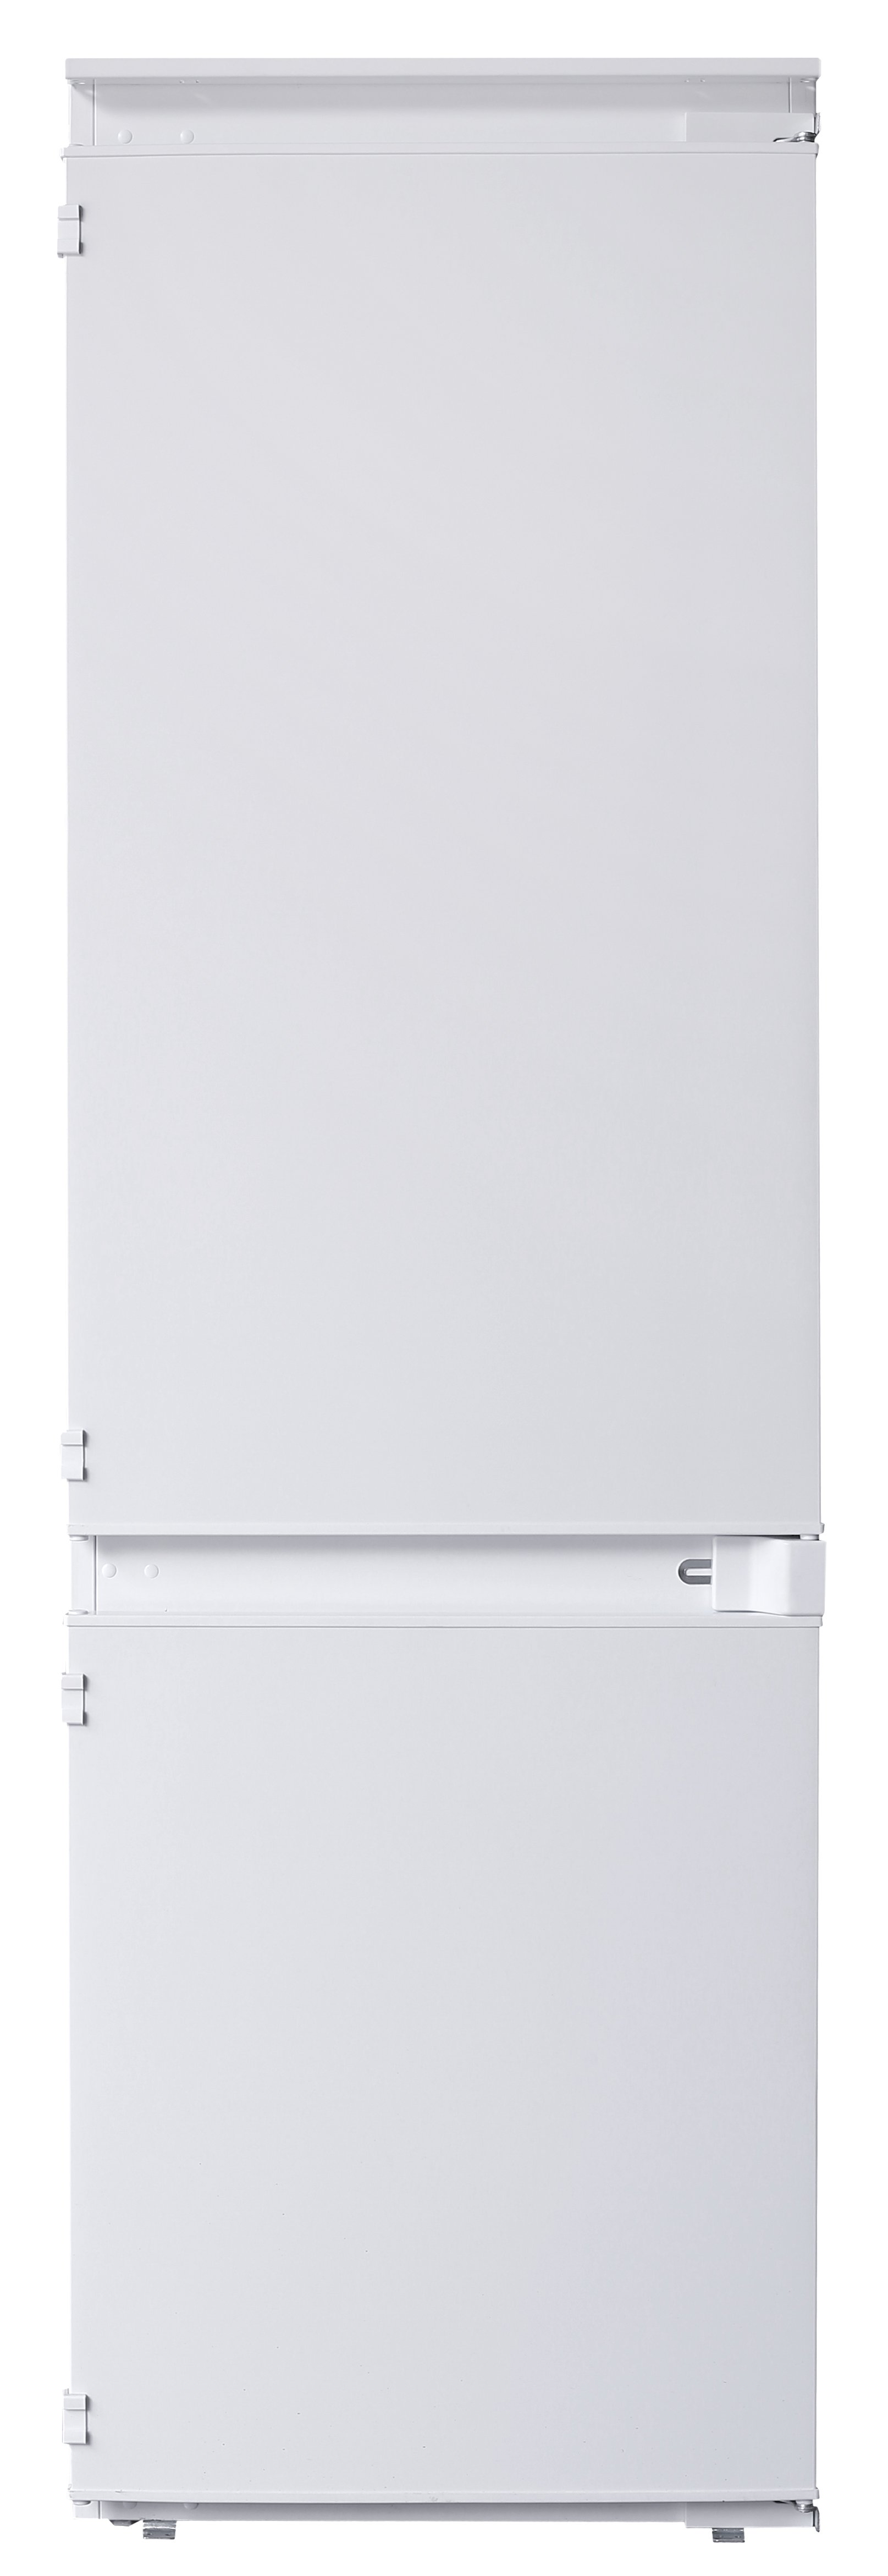 Russell Hobbs RHBI7030FF55-177 Integrated Fridge Freezer